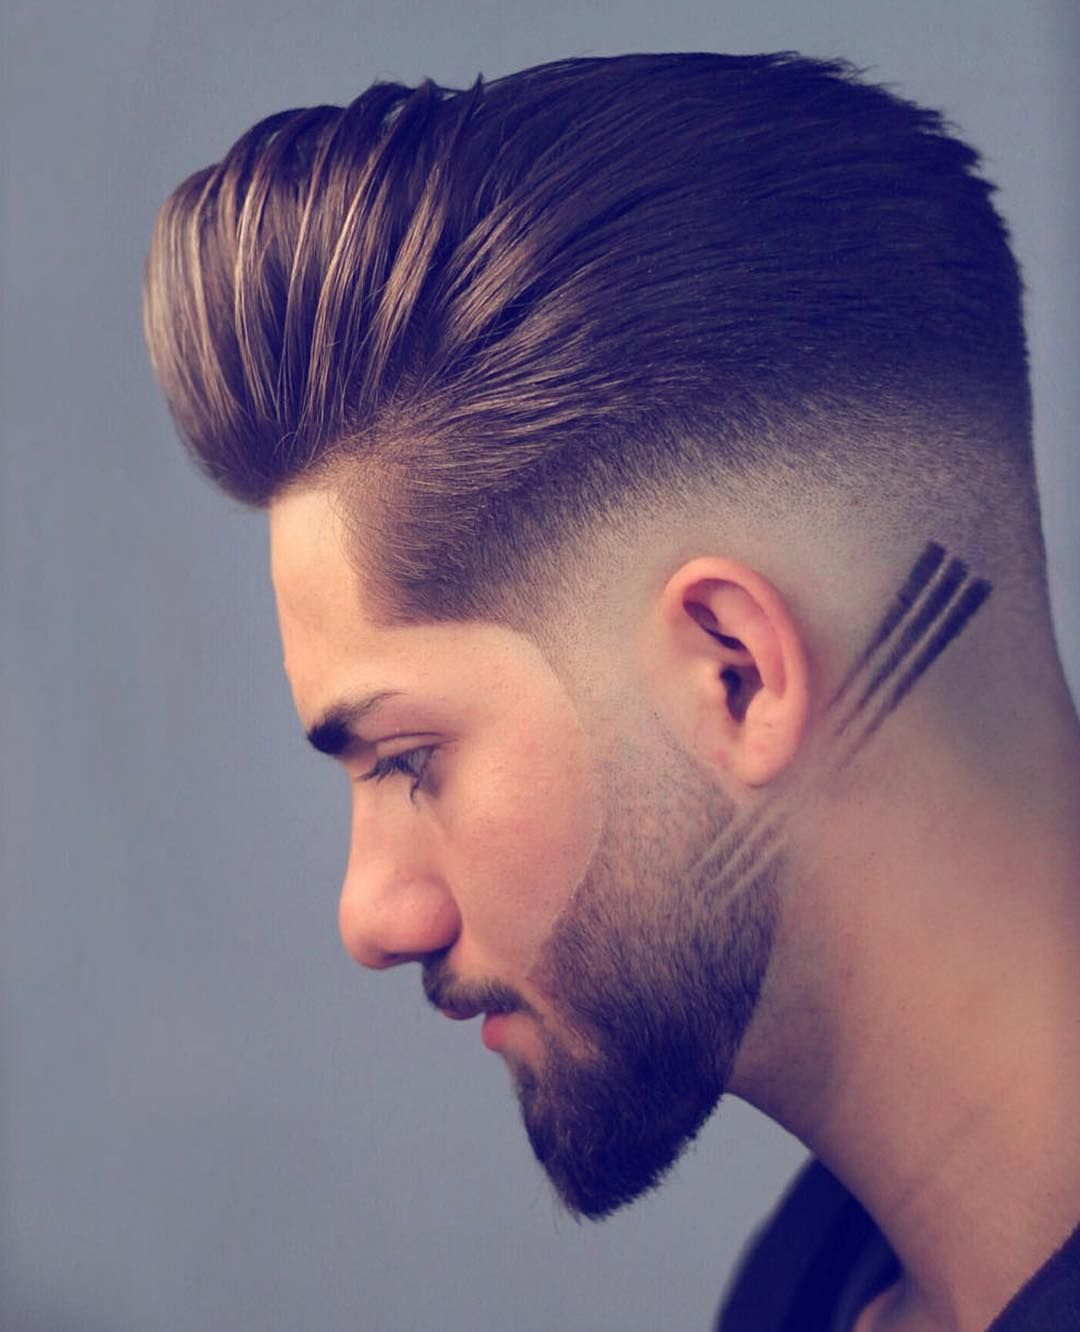 1 Or 2 Tag Your Friends Follow Me Hairstyleguys Clothes Shop Vintage Stree Men Haircut Styles Beard Styles Haircuts For Men